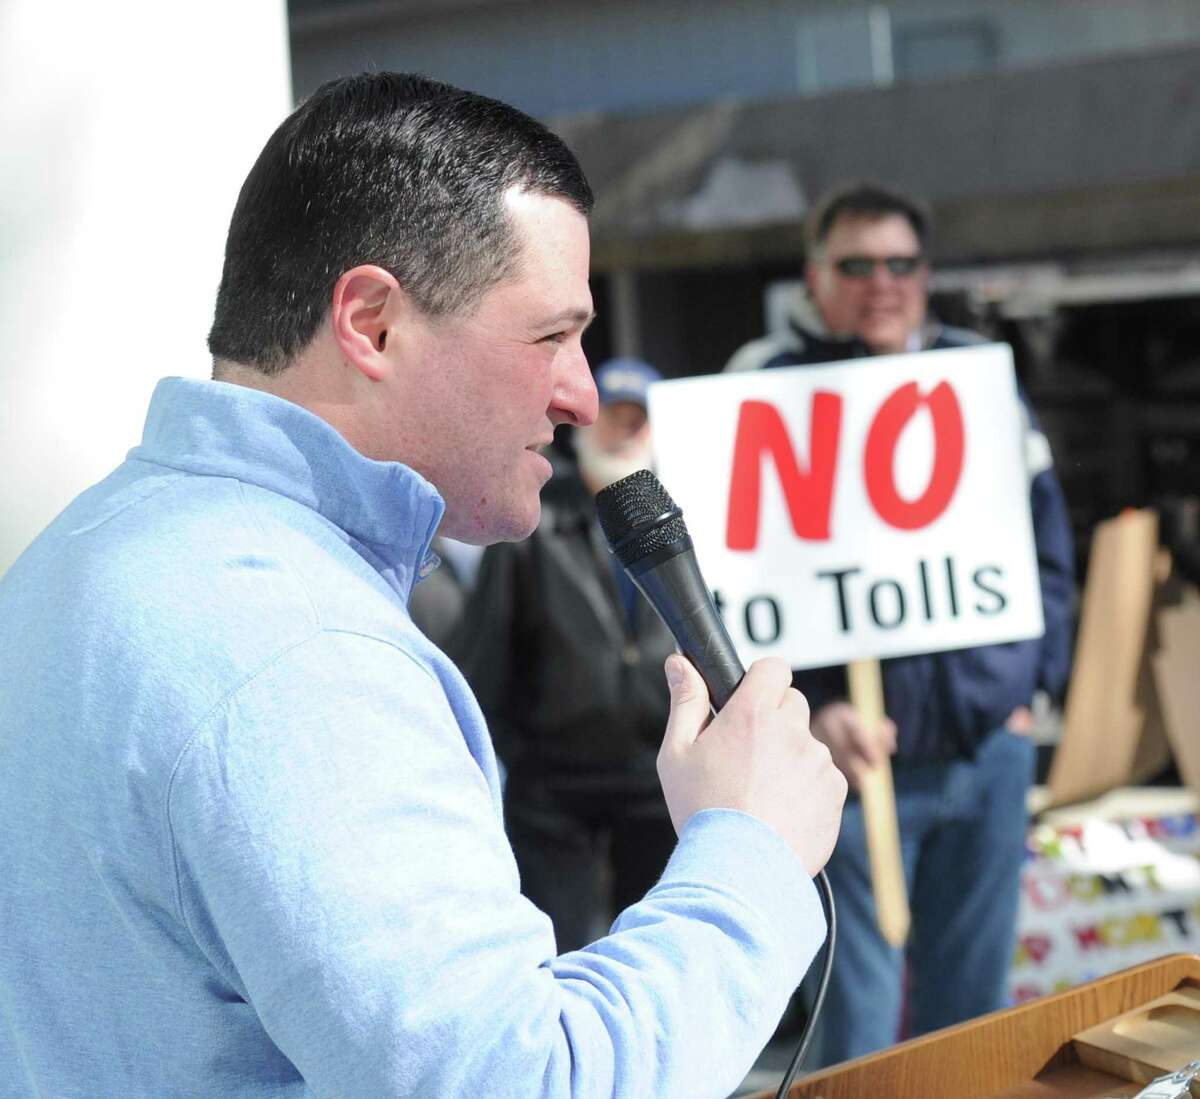 Public protest against tolls, a new gas tax and tire tax, held in front of the Stamford Goverment Center, Stamford, Conn., Saturday, Feb. 17, 2018.